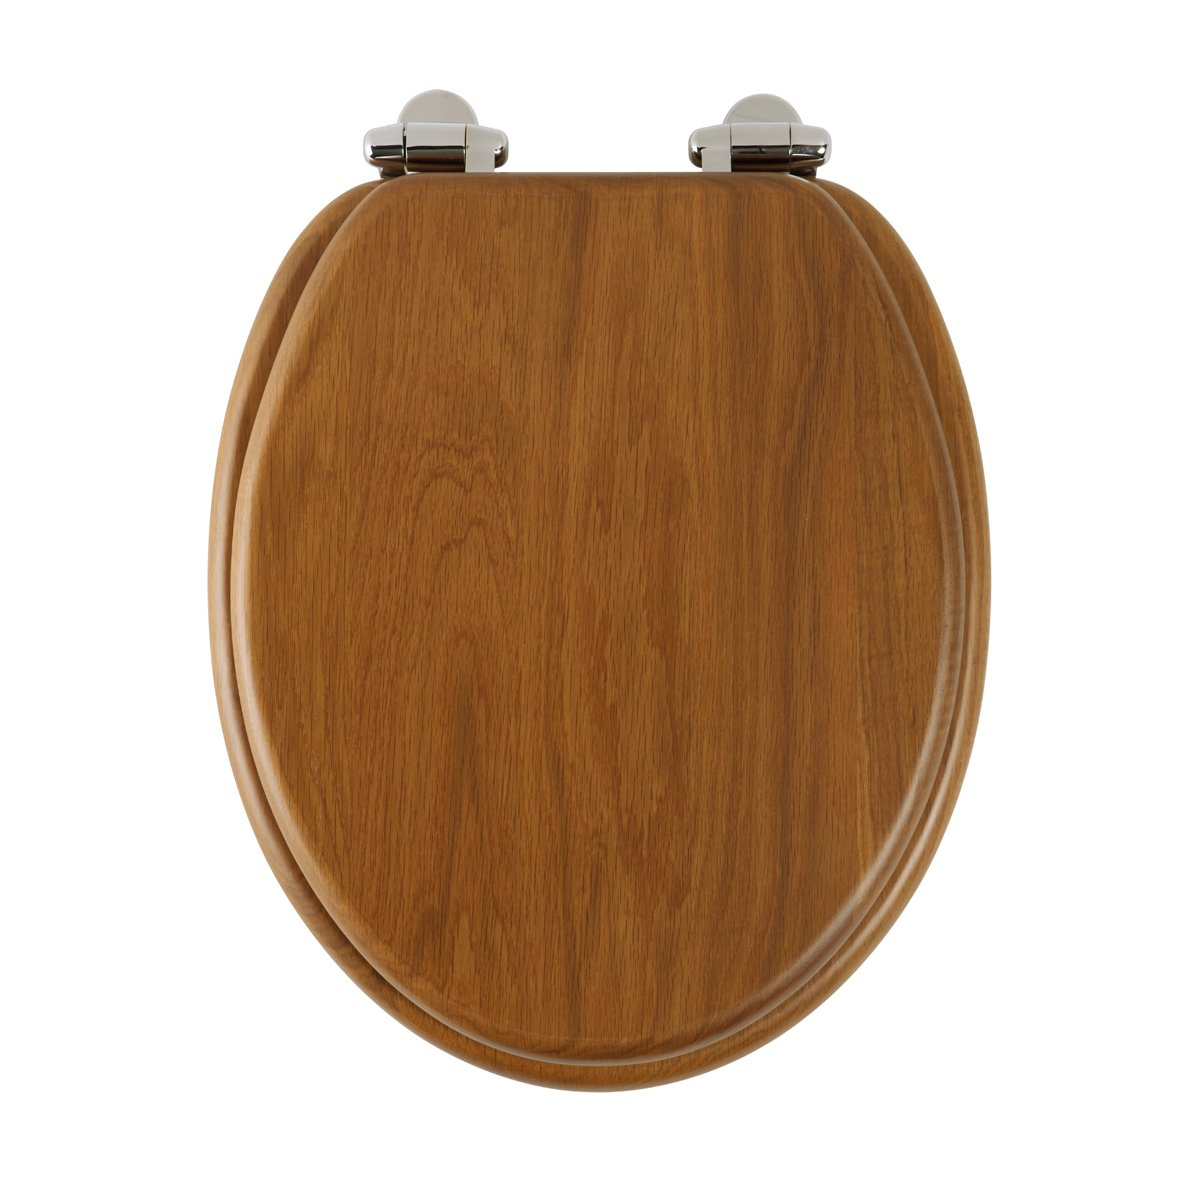 Roper Rhodes Honey Oak Finish Toilet Seat With Soft Close Hinge - Oak toilet seat soft close